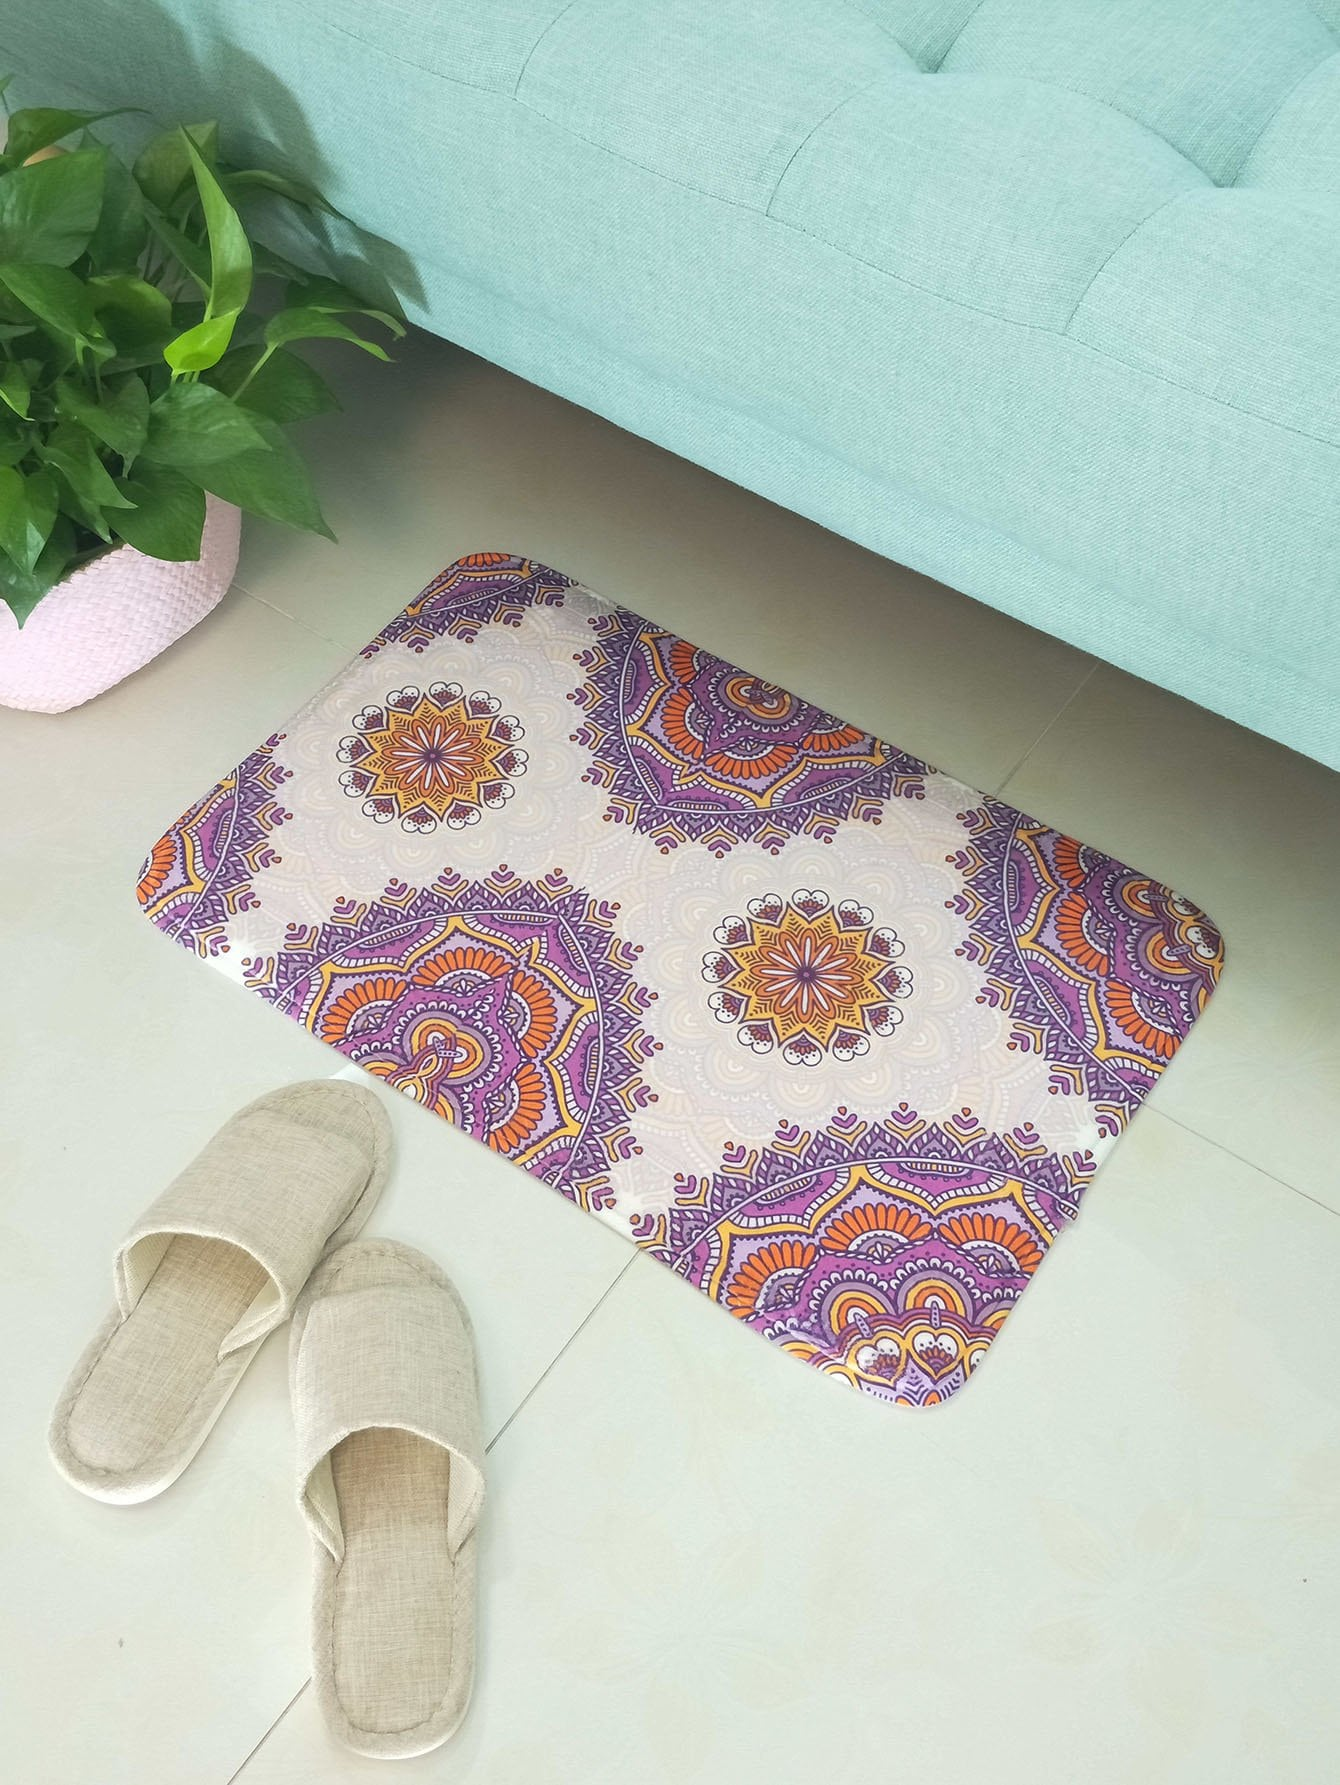 Lotus Flower Floor Mat jp 38 19 картина дама pavone